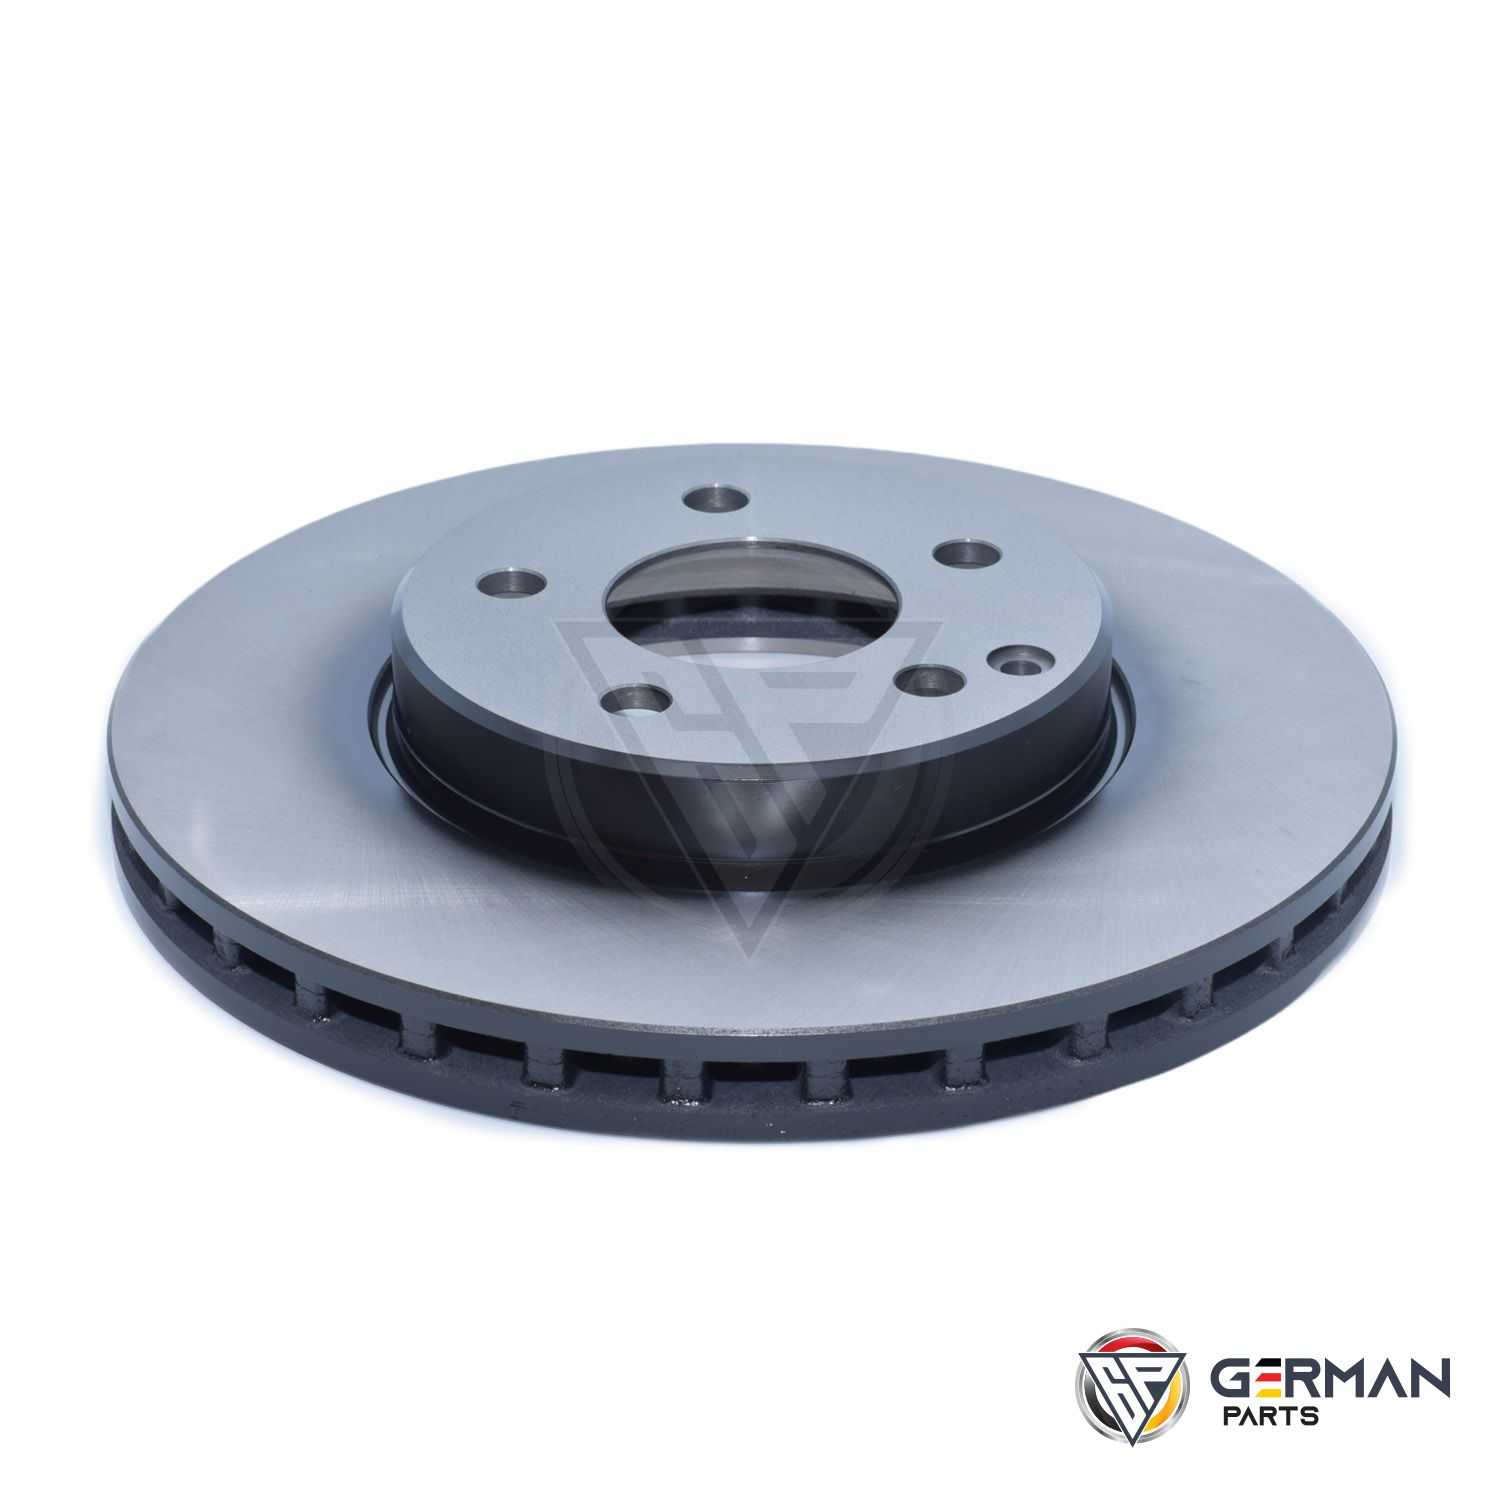 Buy TRW Front Brake Disc 2114210712 - German Parts